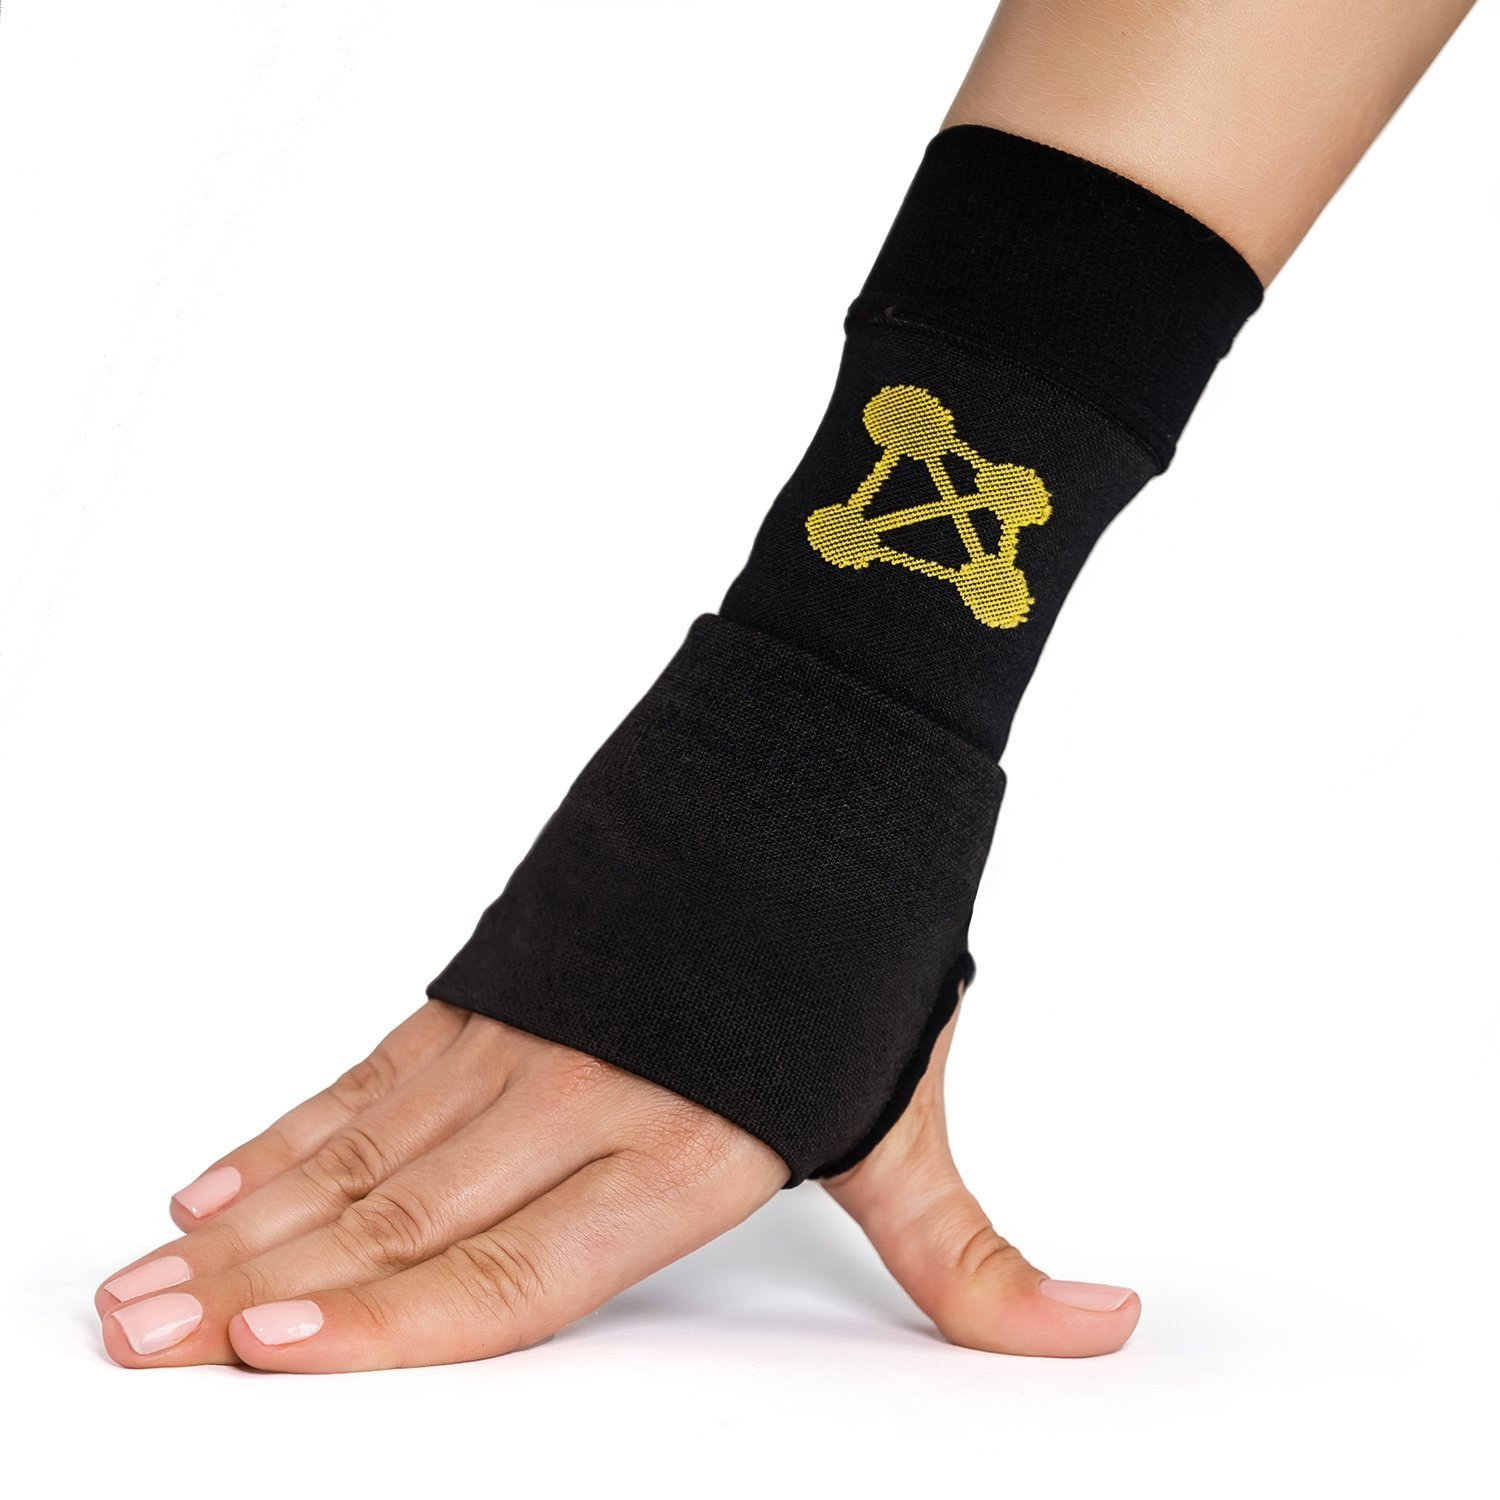 CopperJoint Copper-Infused Compression Wrist Sleeve, High-Performance Design Promotes Improved Circulation to Help Reduce Inflammation and Pain, Single Sleeve (Right, Medium)